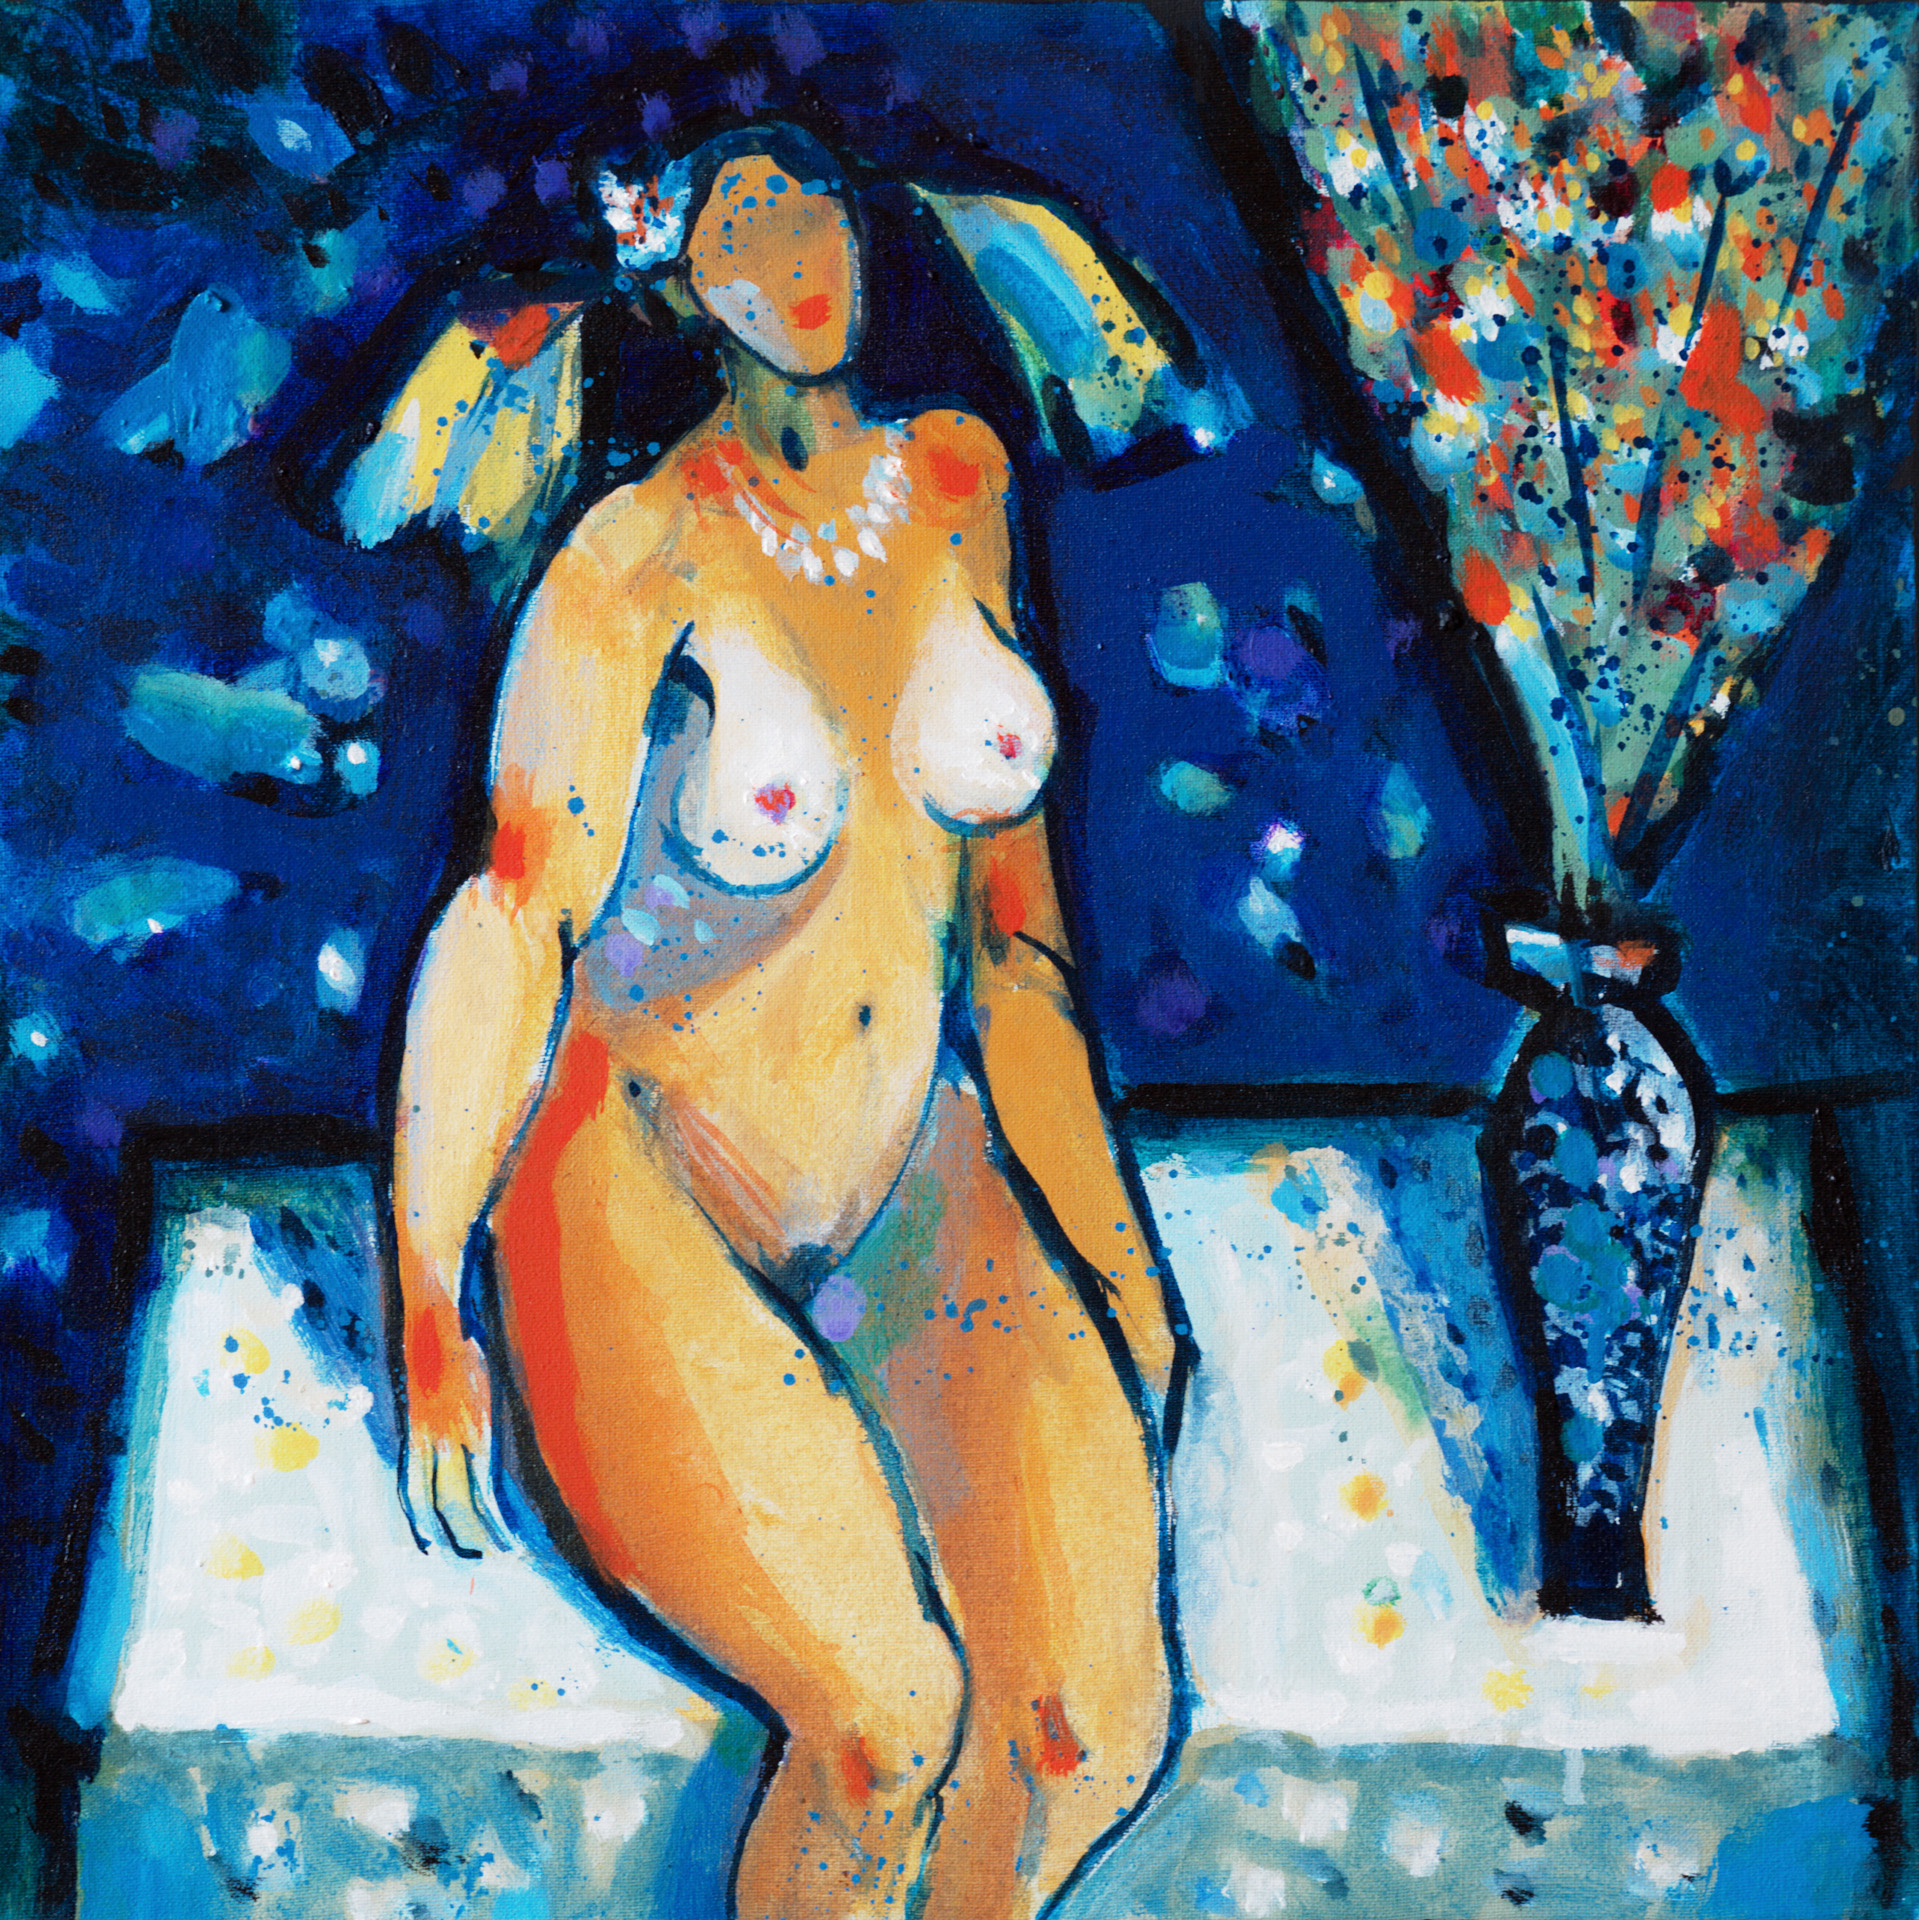 Blue Studio  / 1989 / oil on canvas / 40 x 40cm